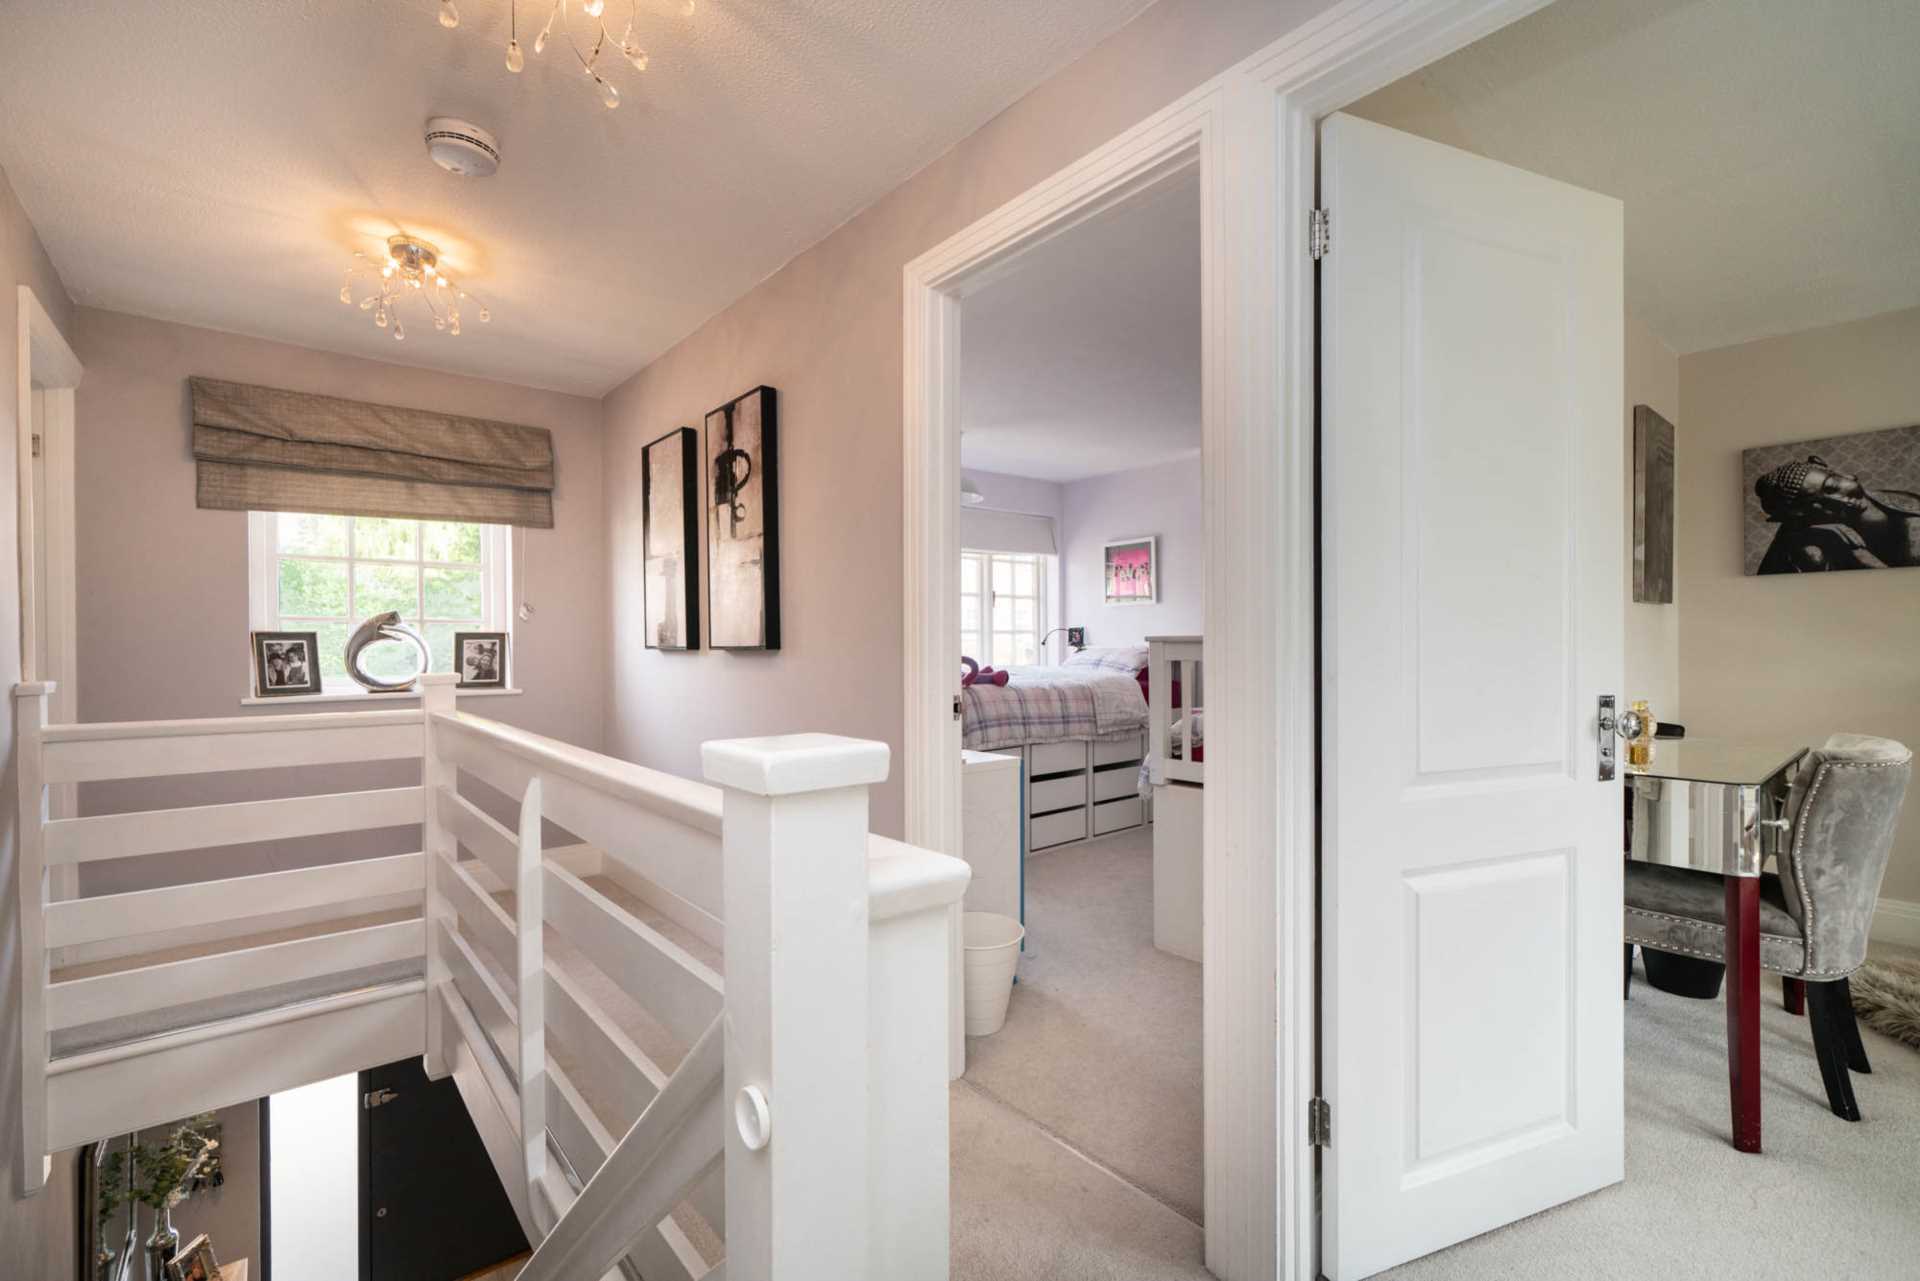 REFURBISHED 4 DOUBLE BEDROOM - SOUGHT AFTER OLD TOWN, HP2, Image 15